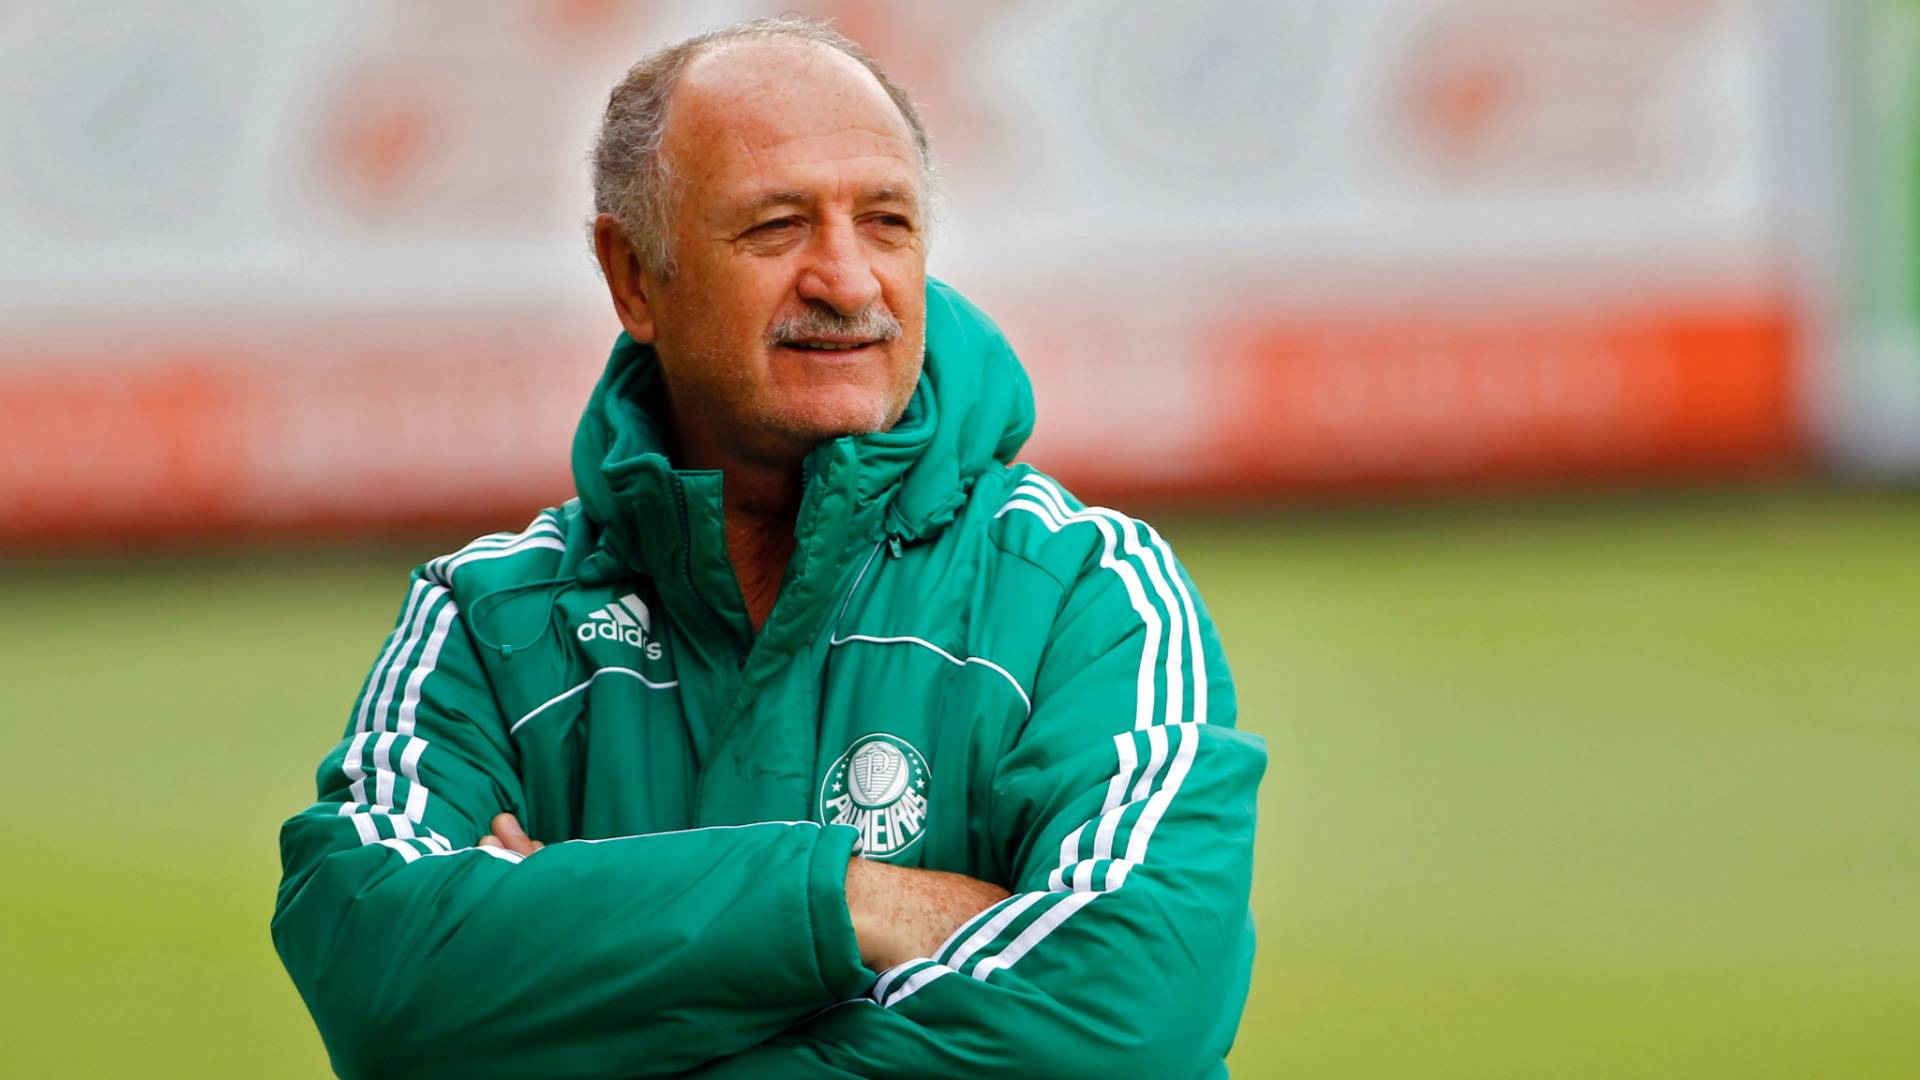 Luiz Felipe Scolari, tcnico do Palmeiras, em foto de maio de 2011